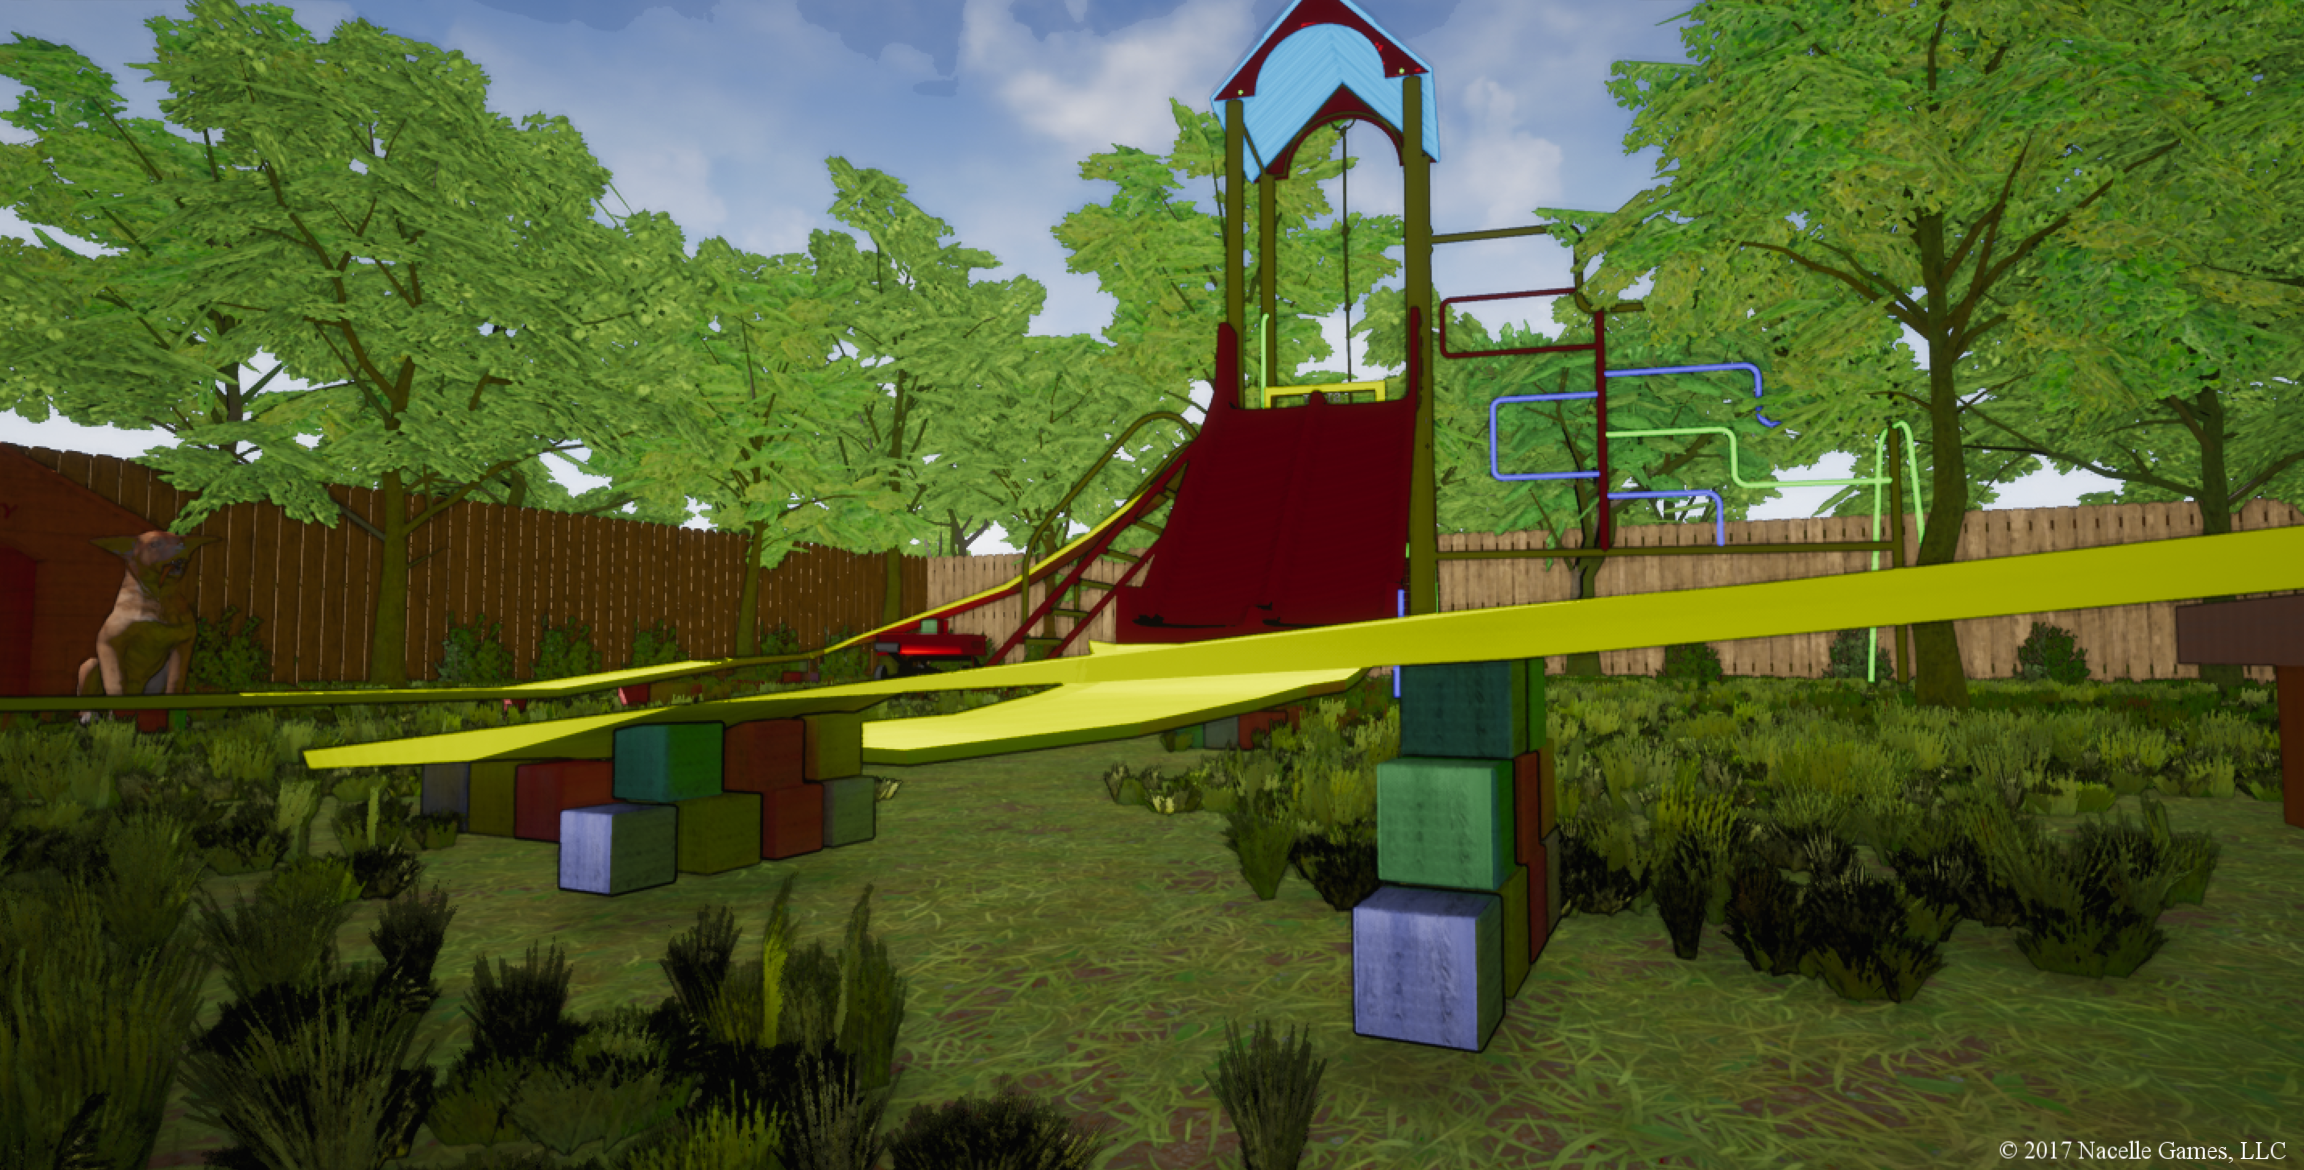 Attention to detail is important, which is why the track is propped up by wooden blocks instead of magically floating above the grass.